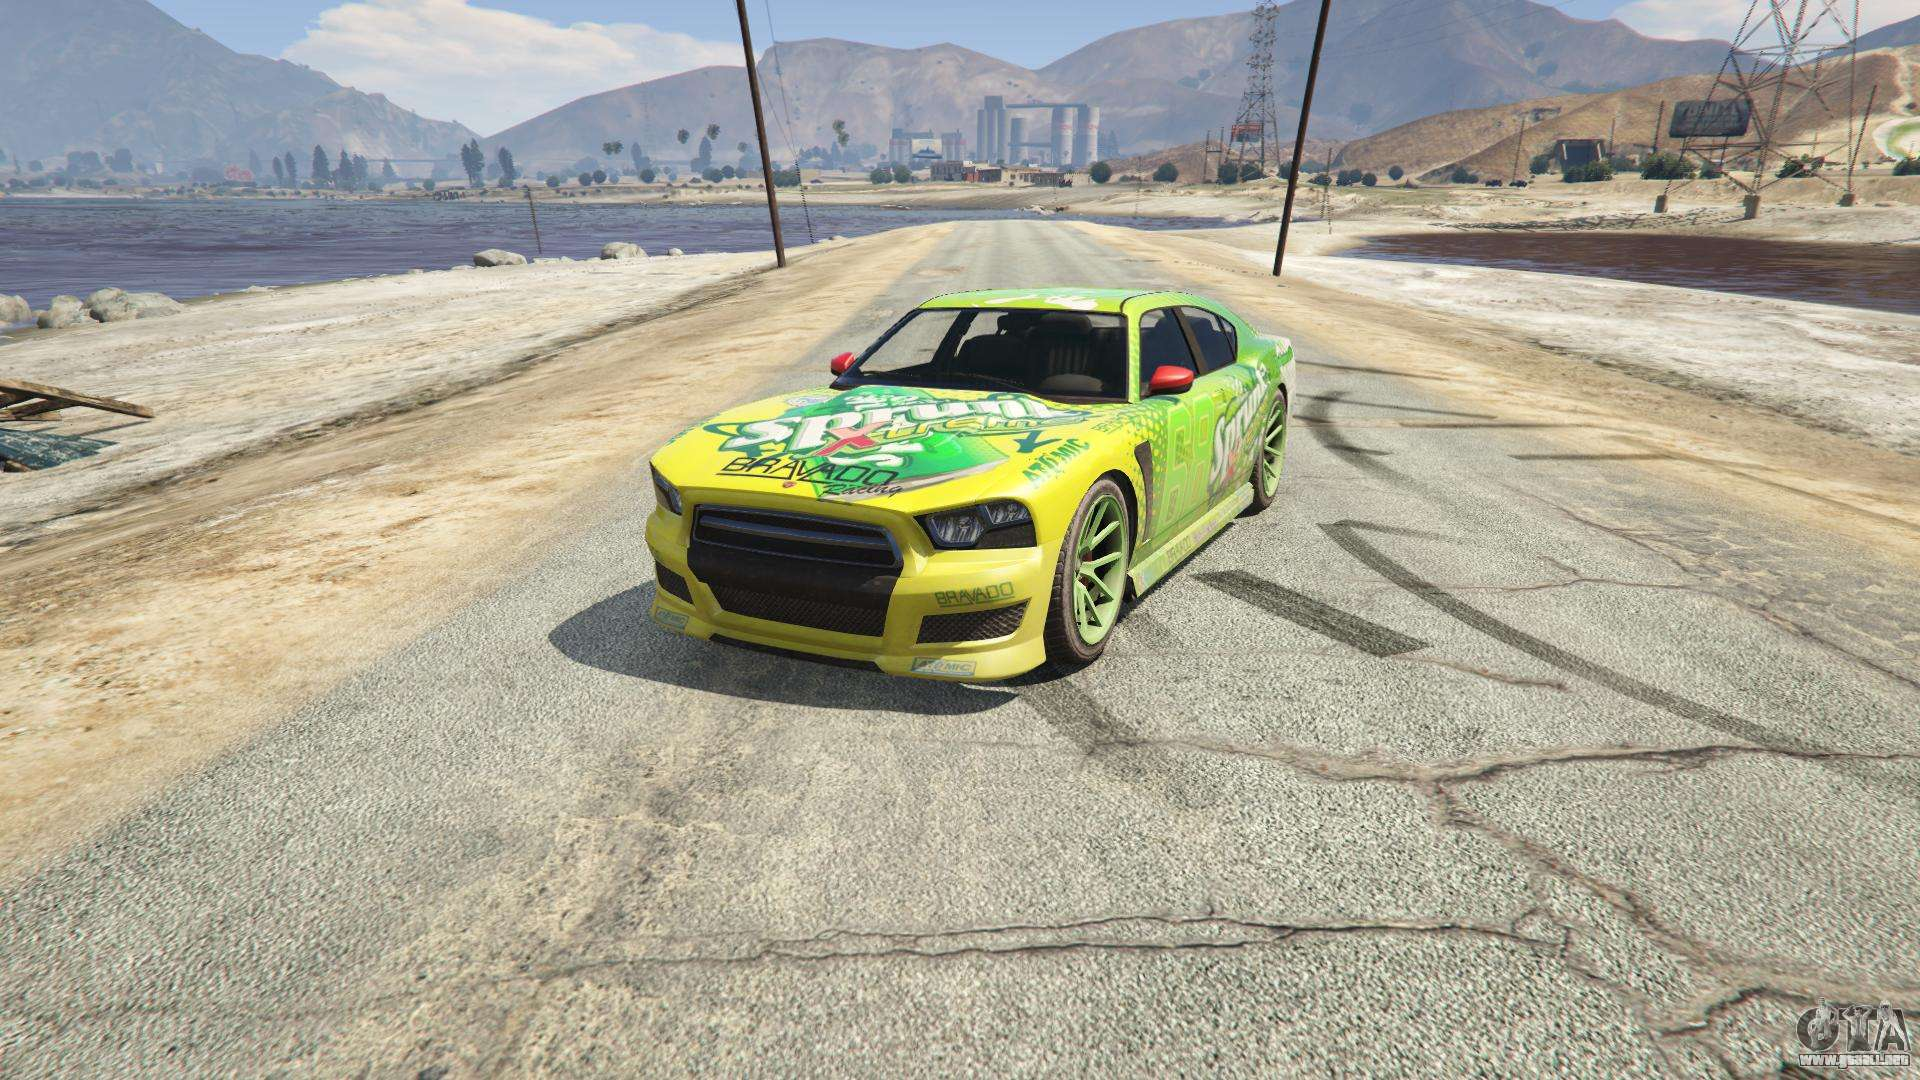 Sprunk Buffalo S GTA 5 - vista frontal